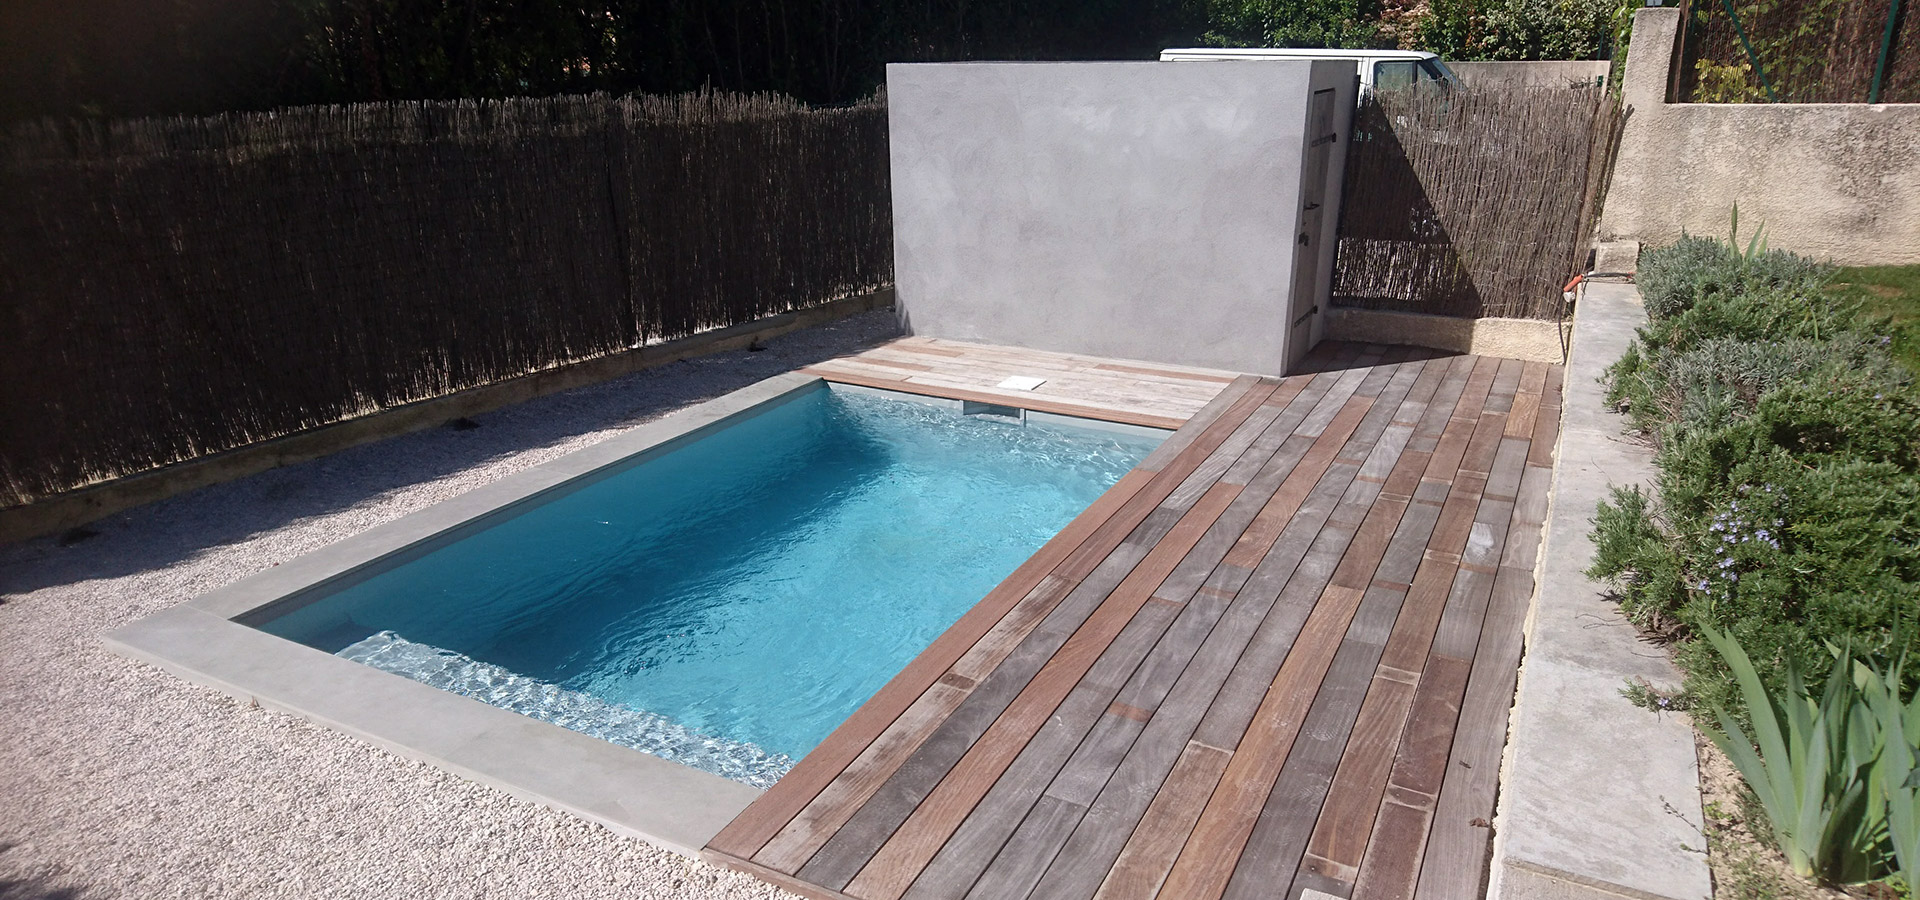 Amenagement de piscine exterieur good amnagement extrieur for Amenagement piscine